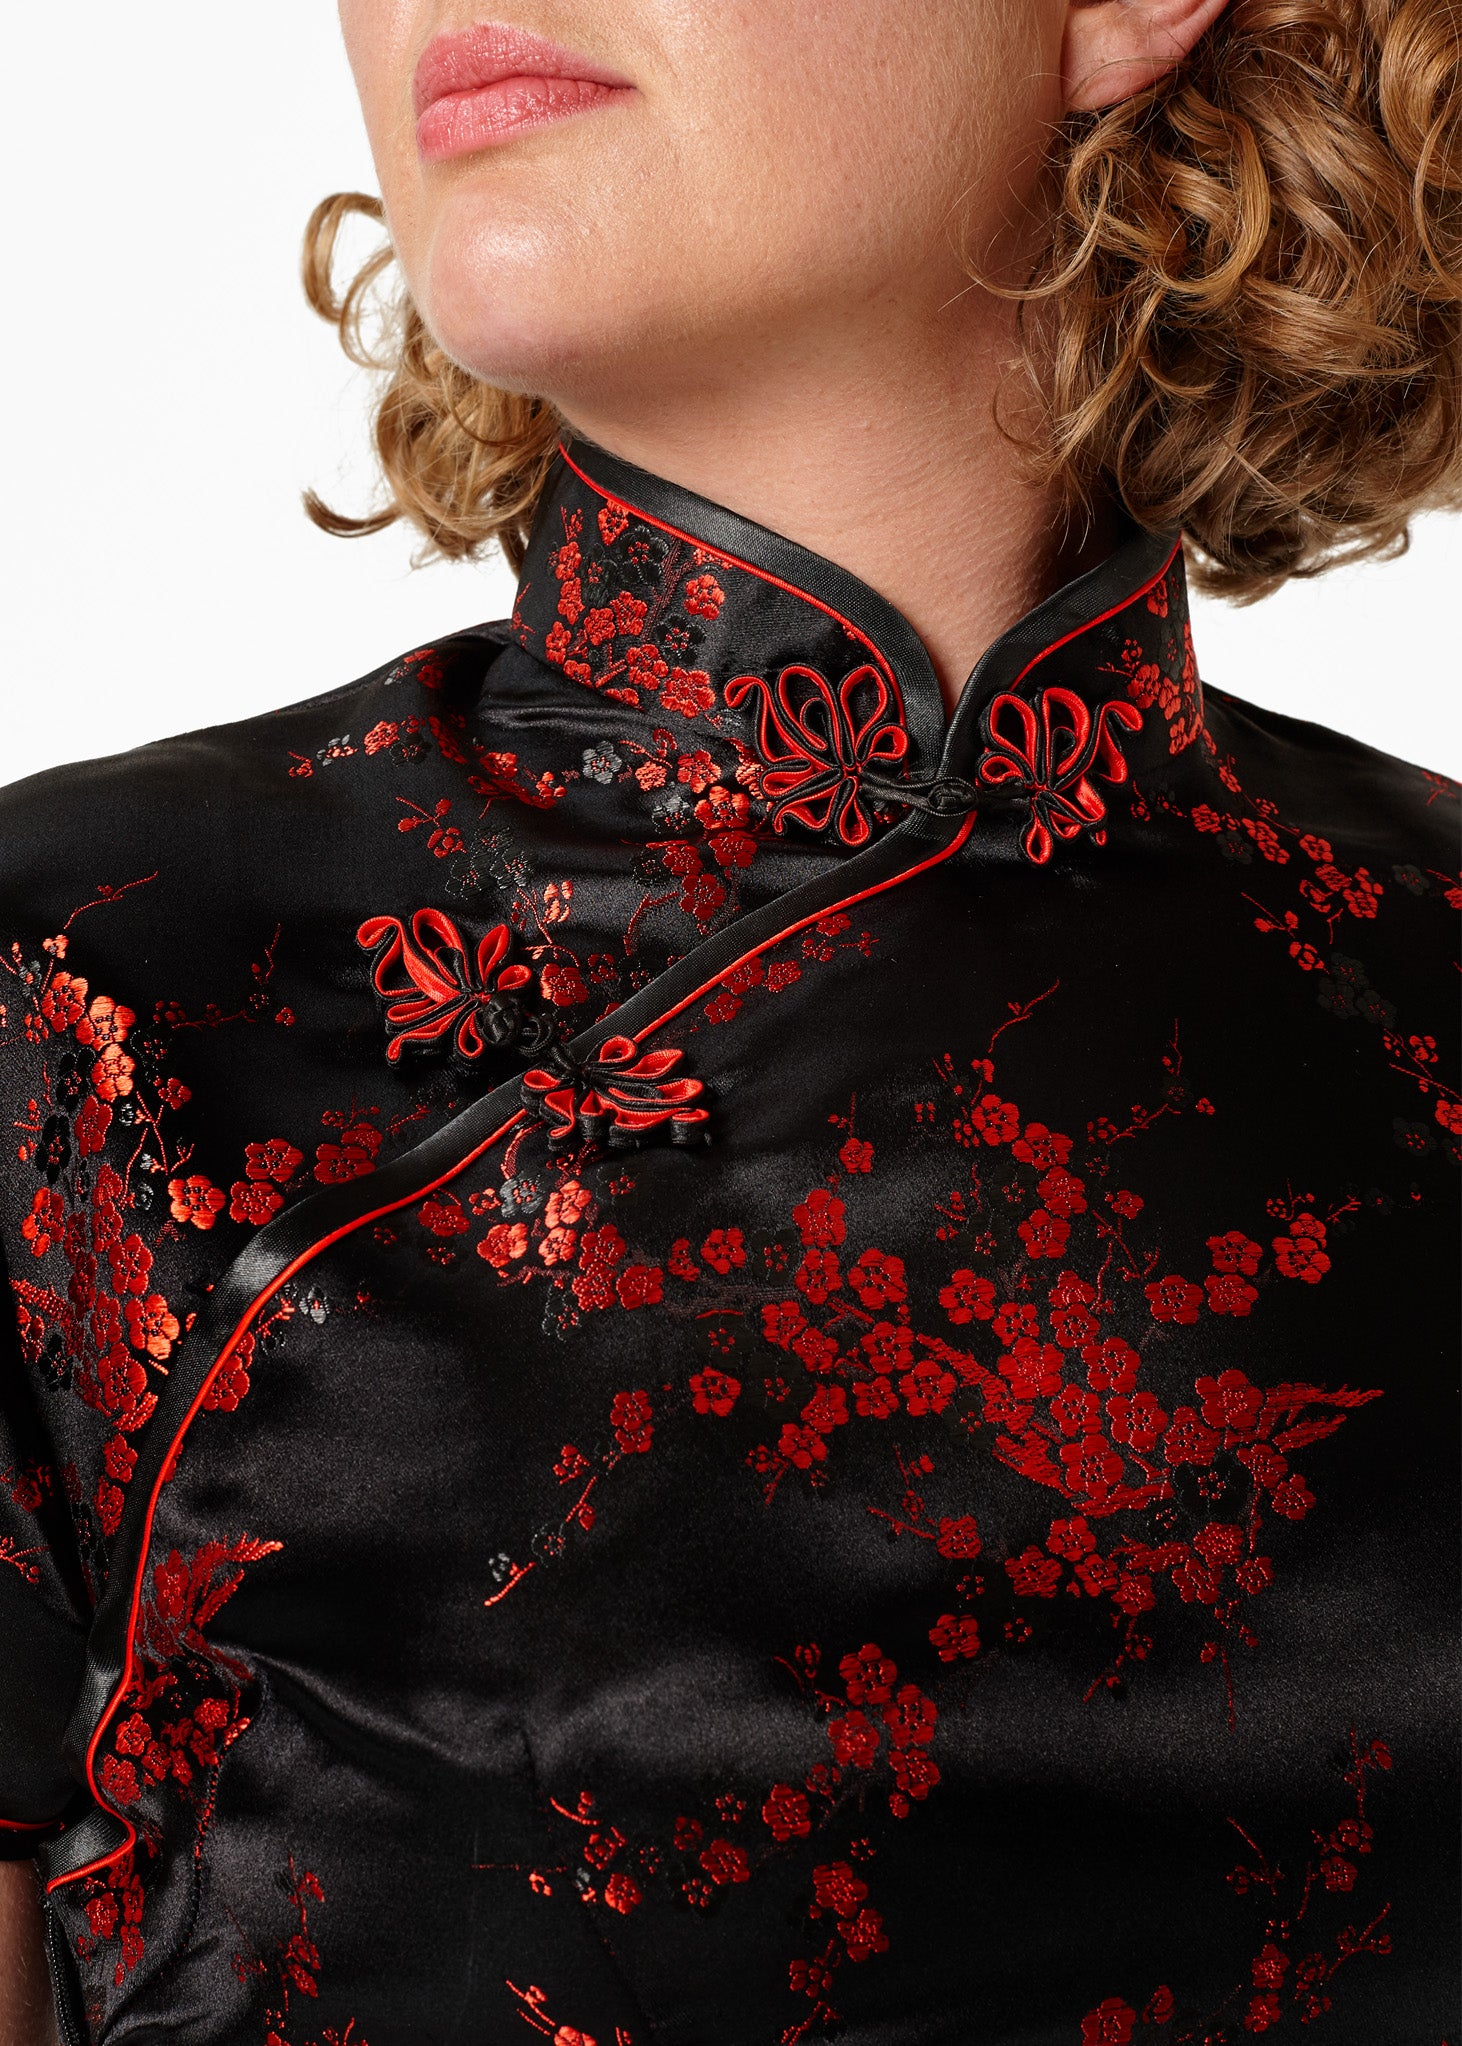 Bound edge mandarin collar and aysmmetric fastening which closes with hand stitched flower and knot frog fastenings in an accent shade